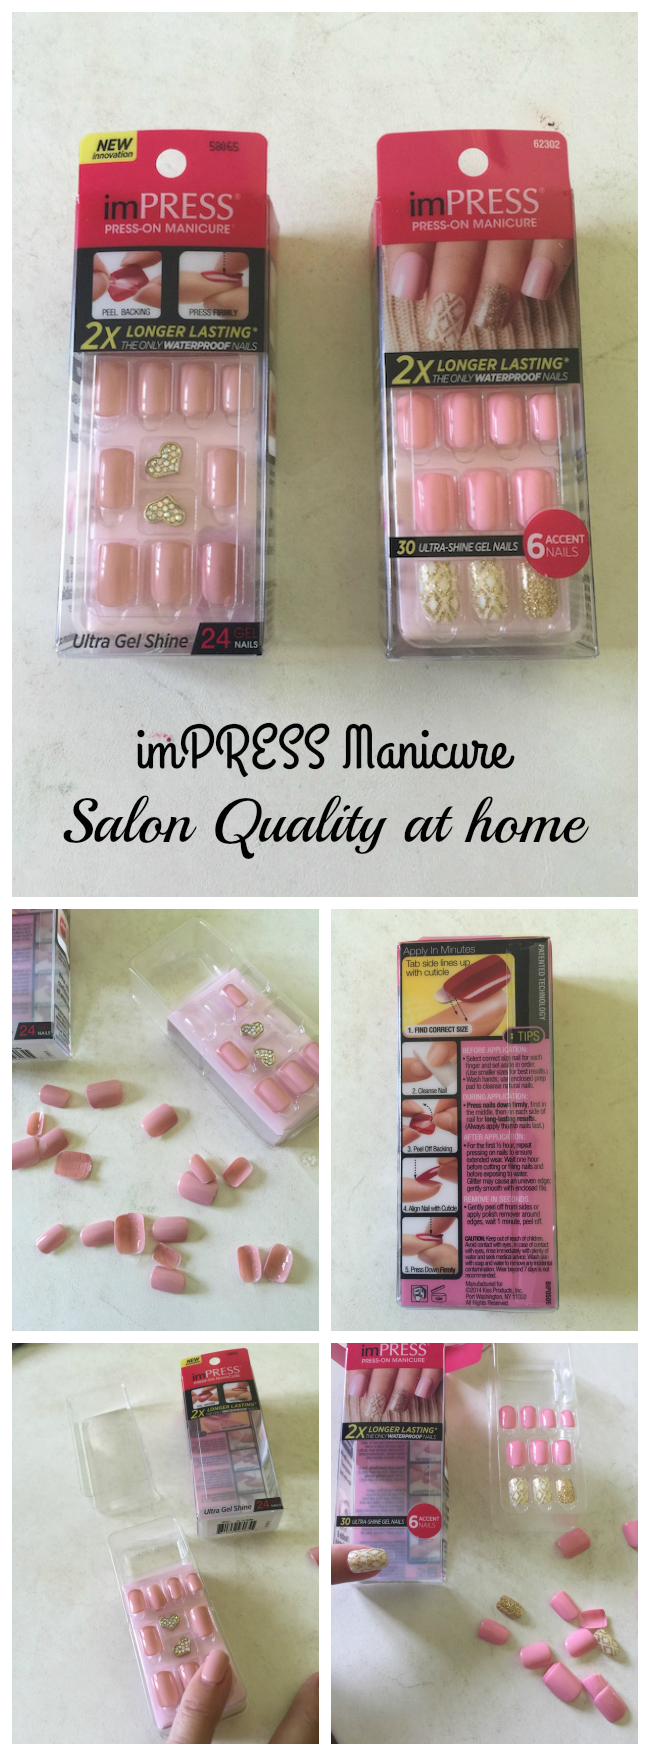 Who has the time and money to get a salon manicure all the time? Not me! I am so glad to have found imPRESS Manicure - Salon Quality at home & oh so easy!